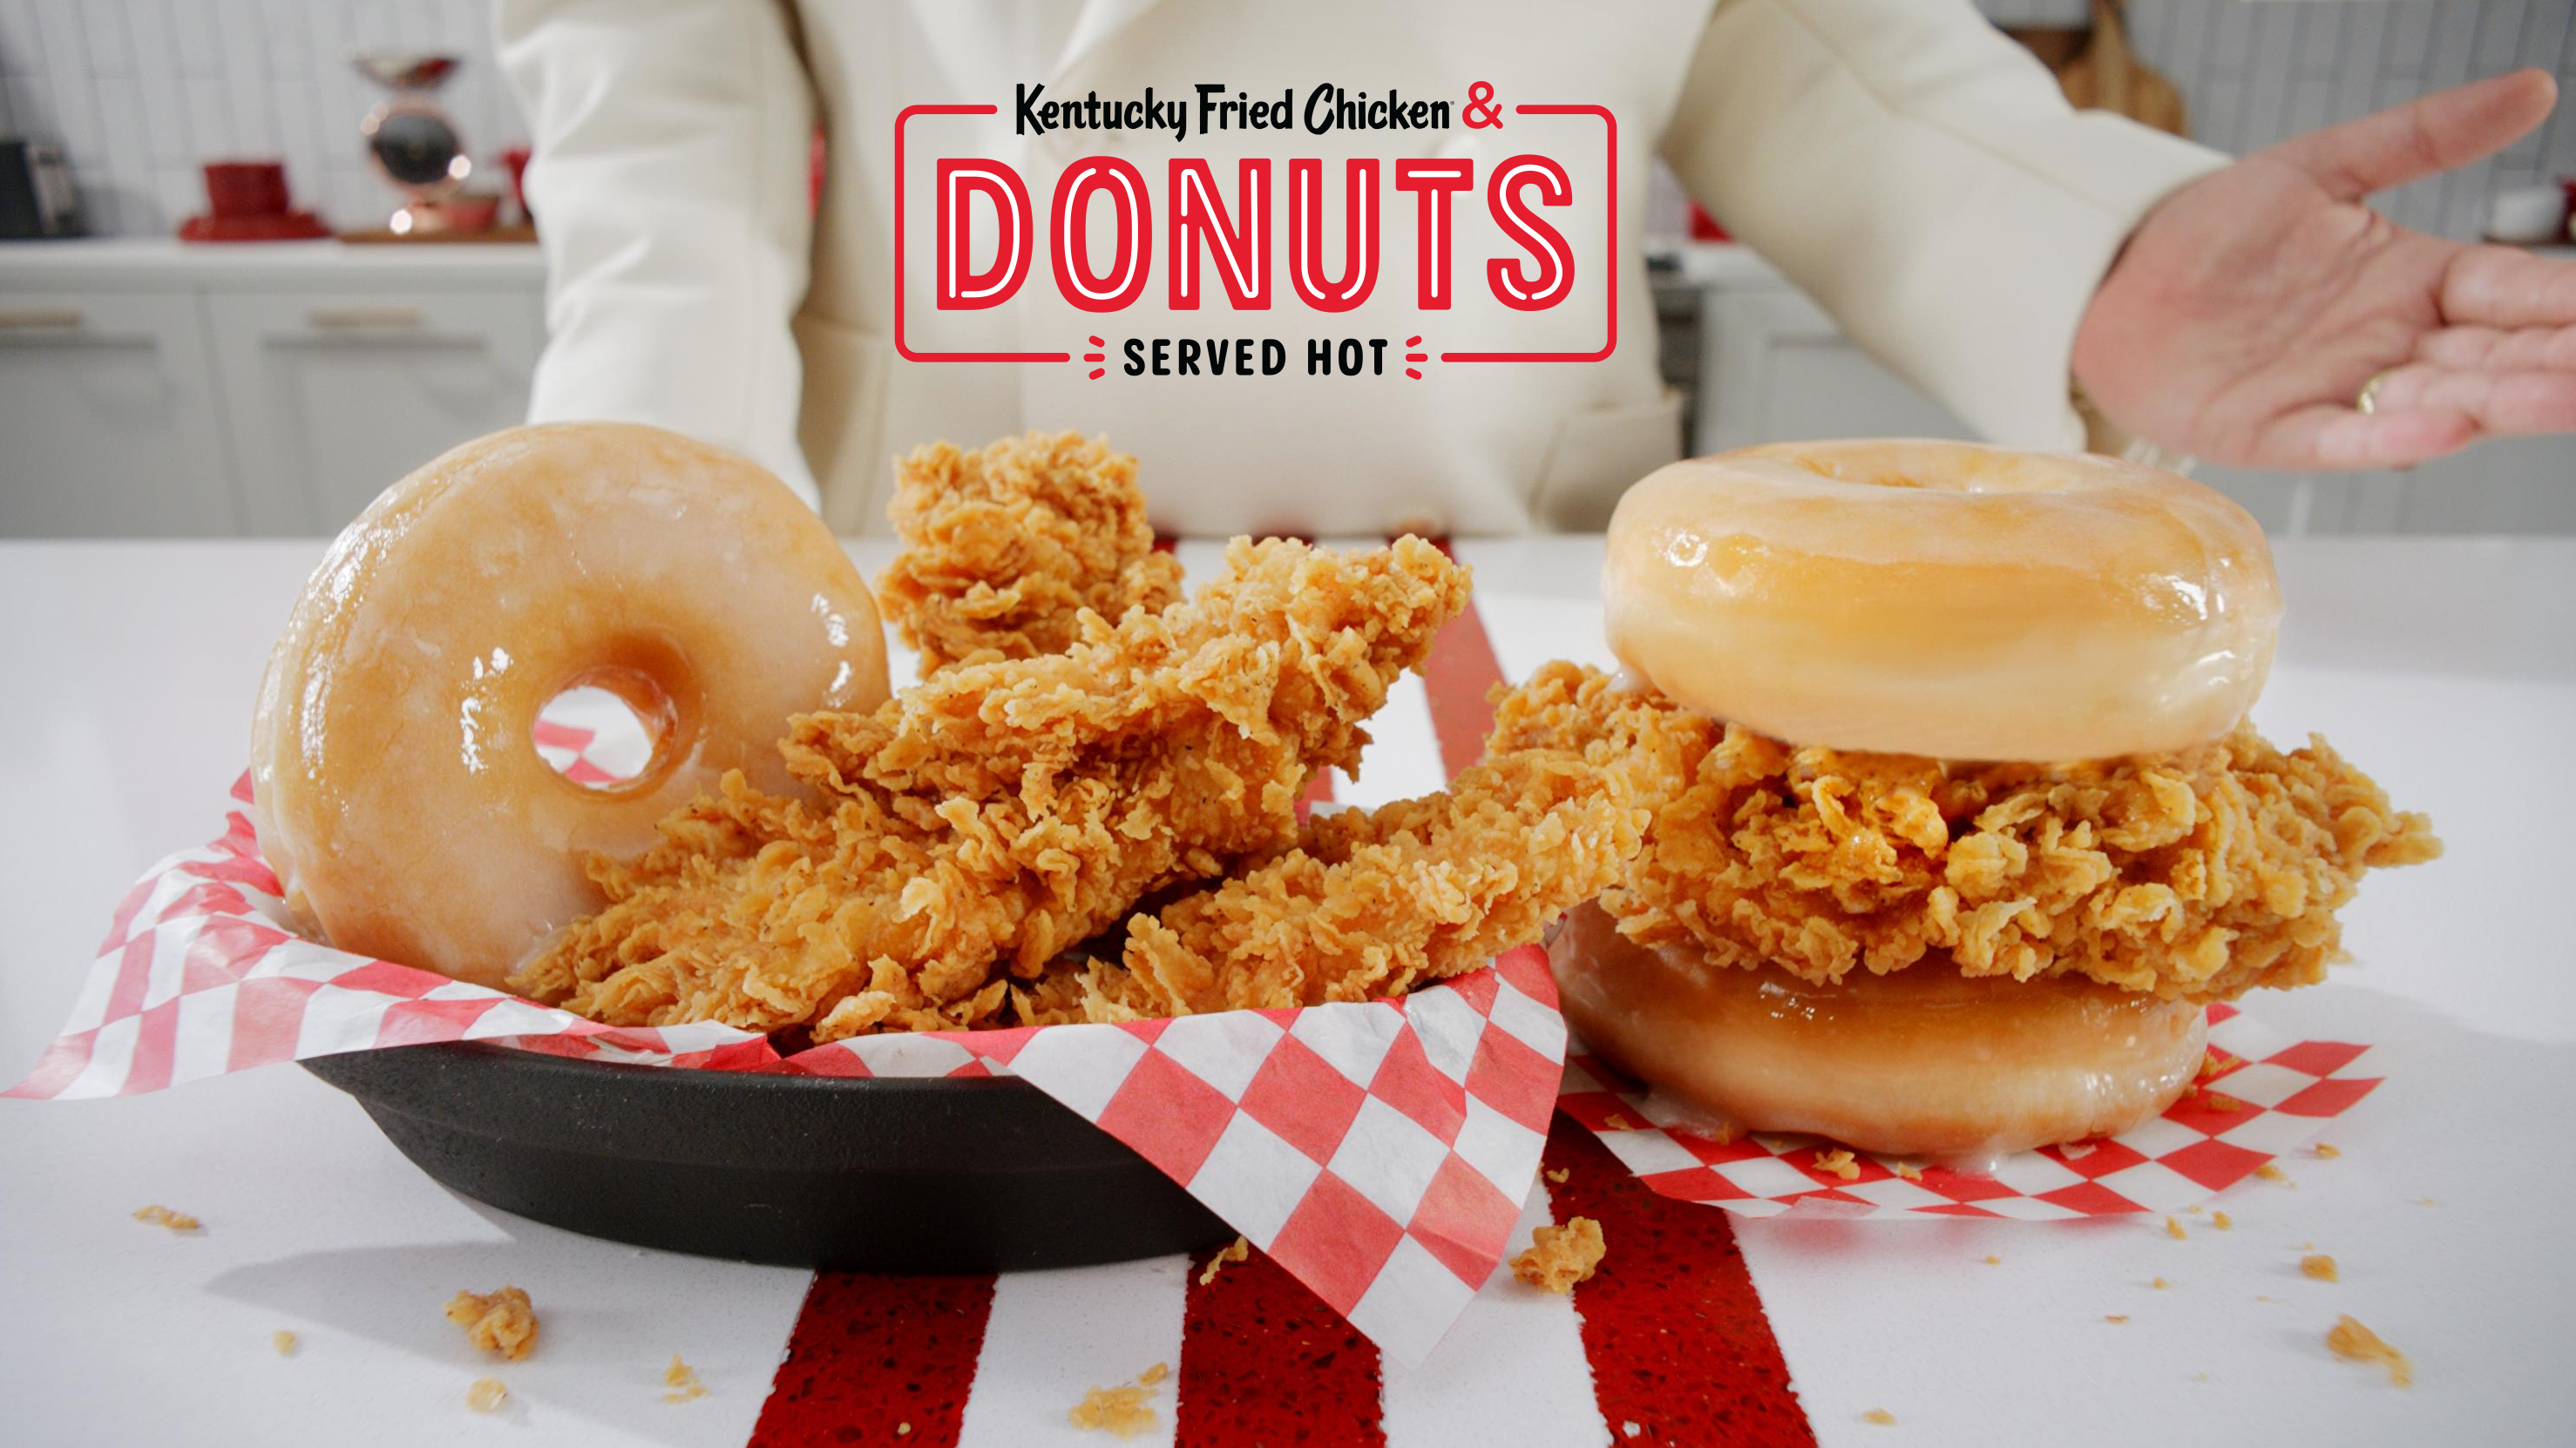 KFC Donut sandwich with fried chicken and glazed doughnuts now available nationwide